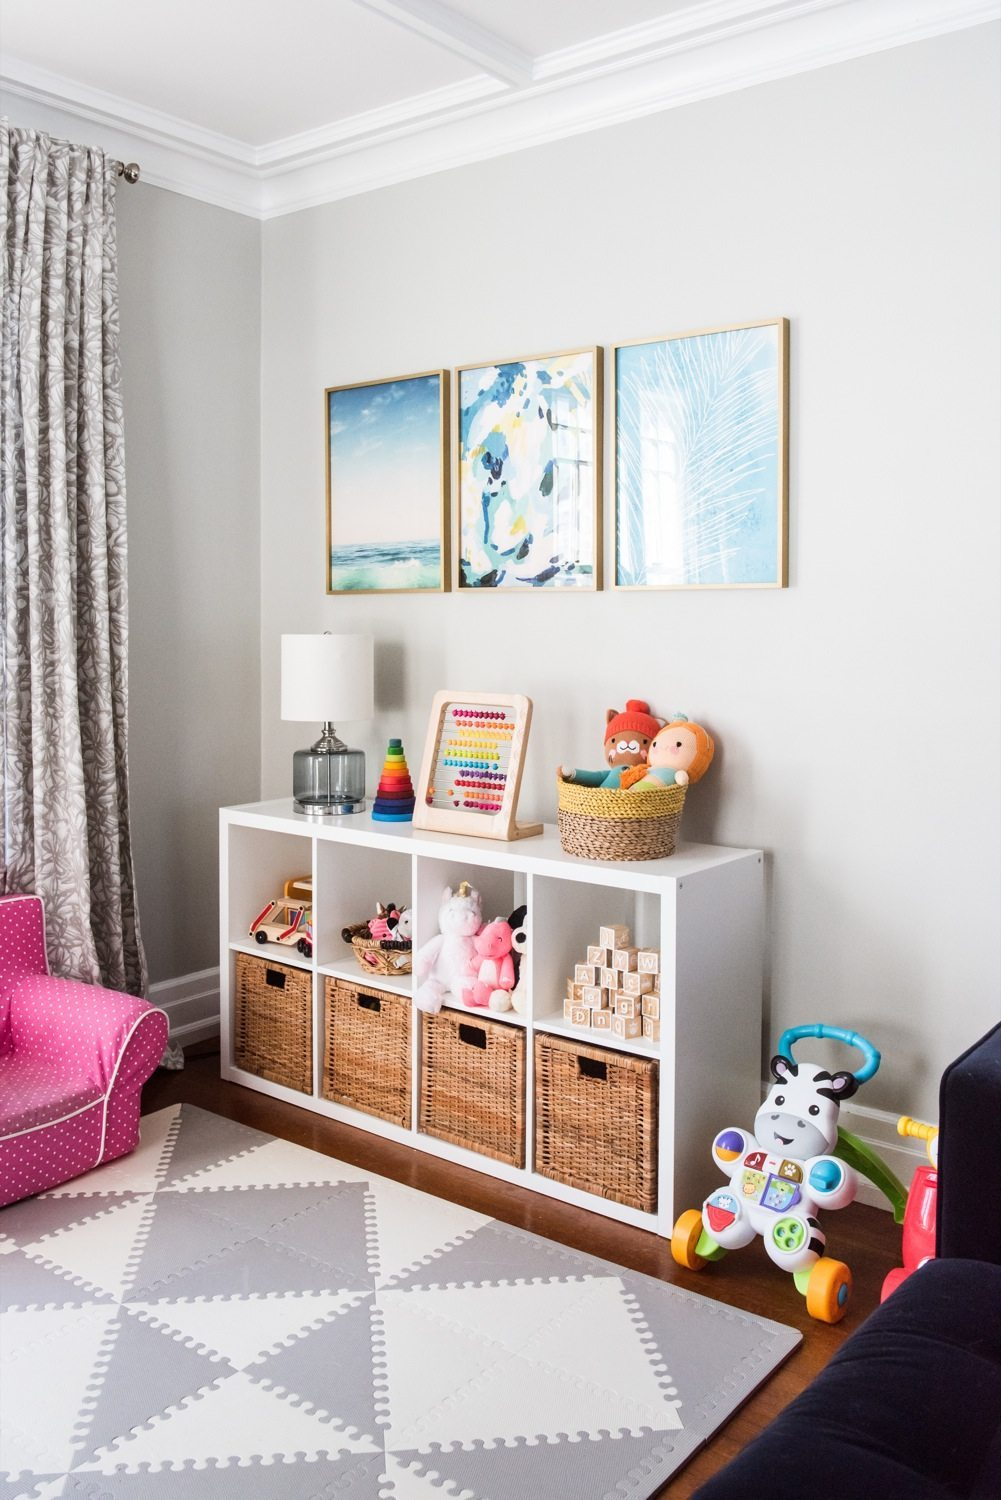 Emerson 39 s modern playroom tour the sweetest occasion for Living room ideas kids